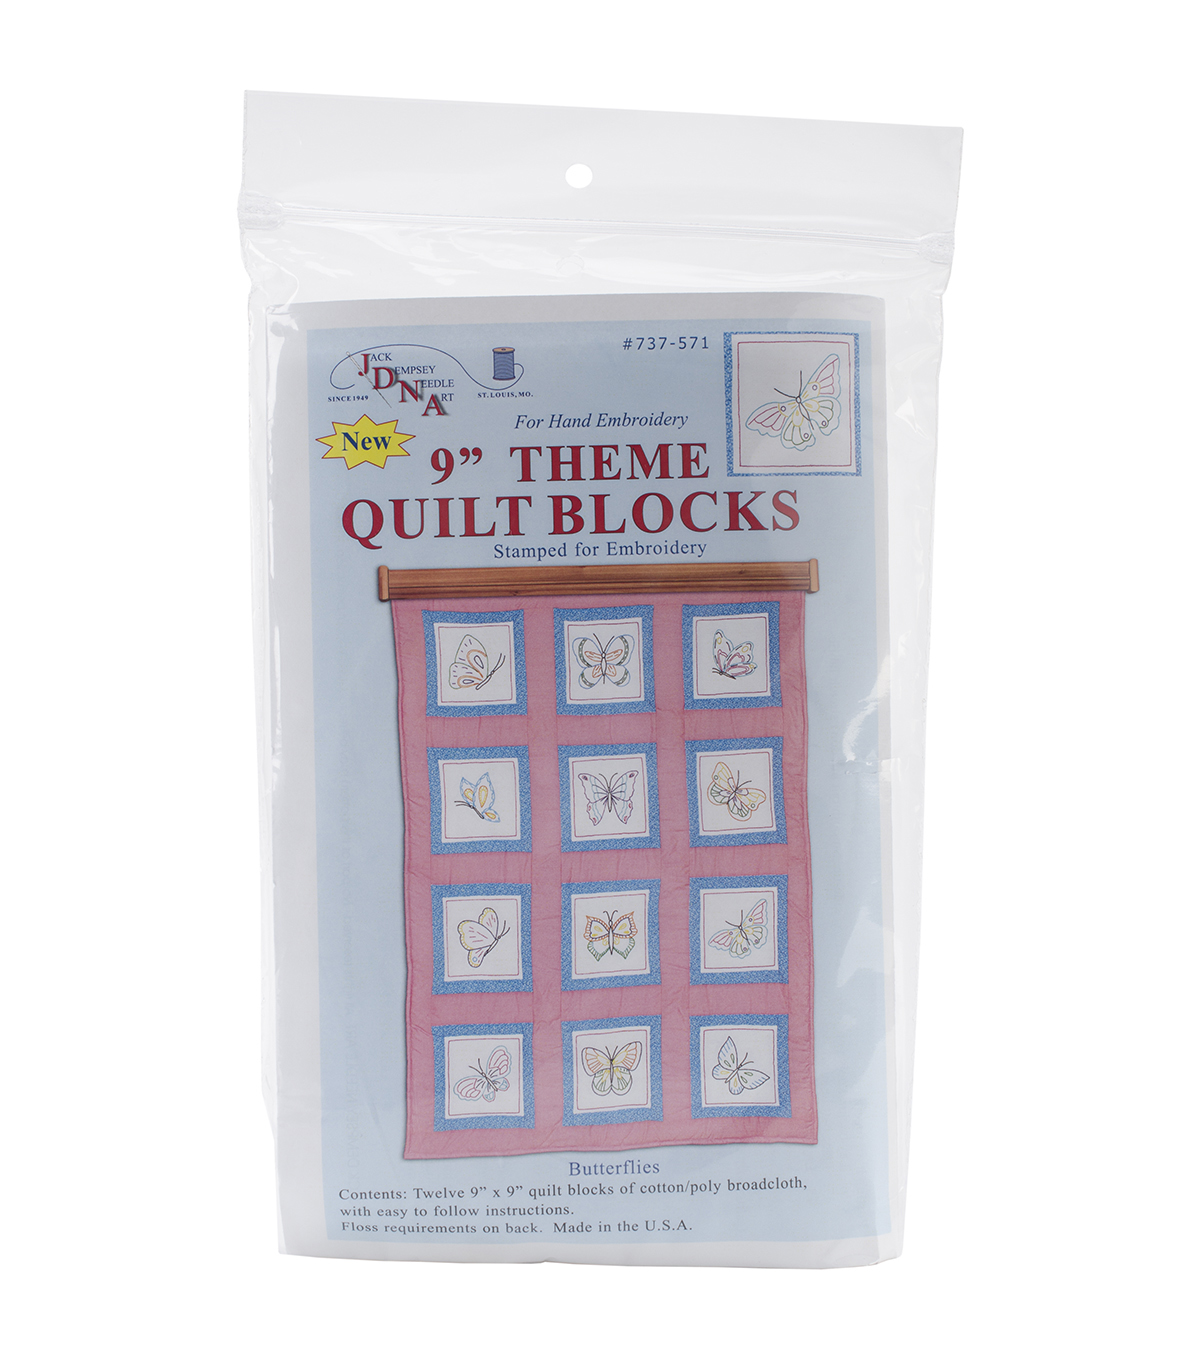 Jack Dempsey Themed Stamped Butterflies White Quilt Blocks